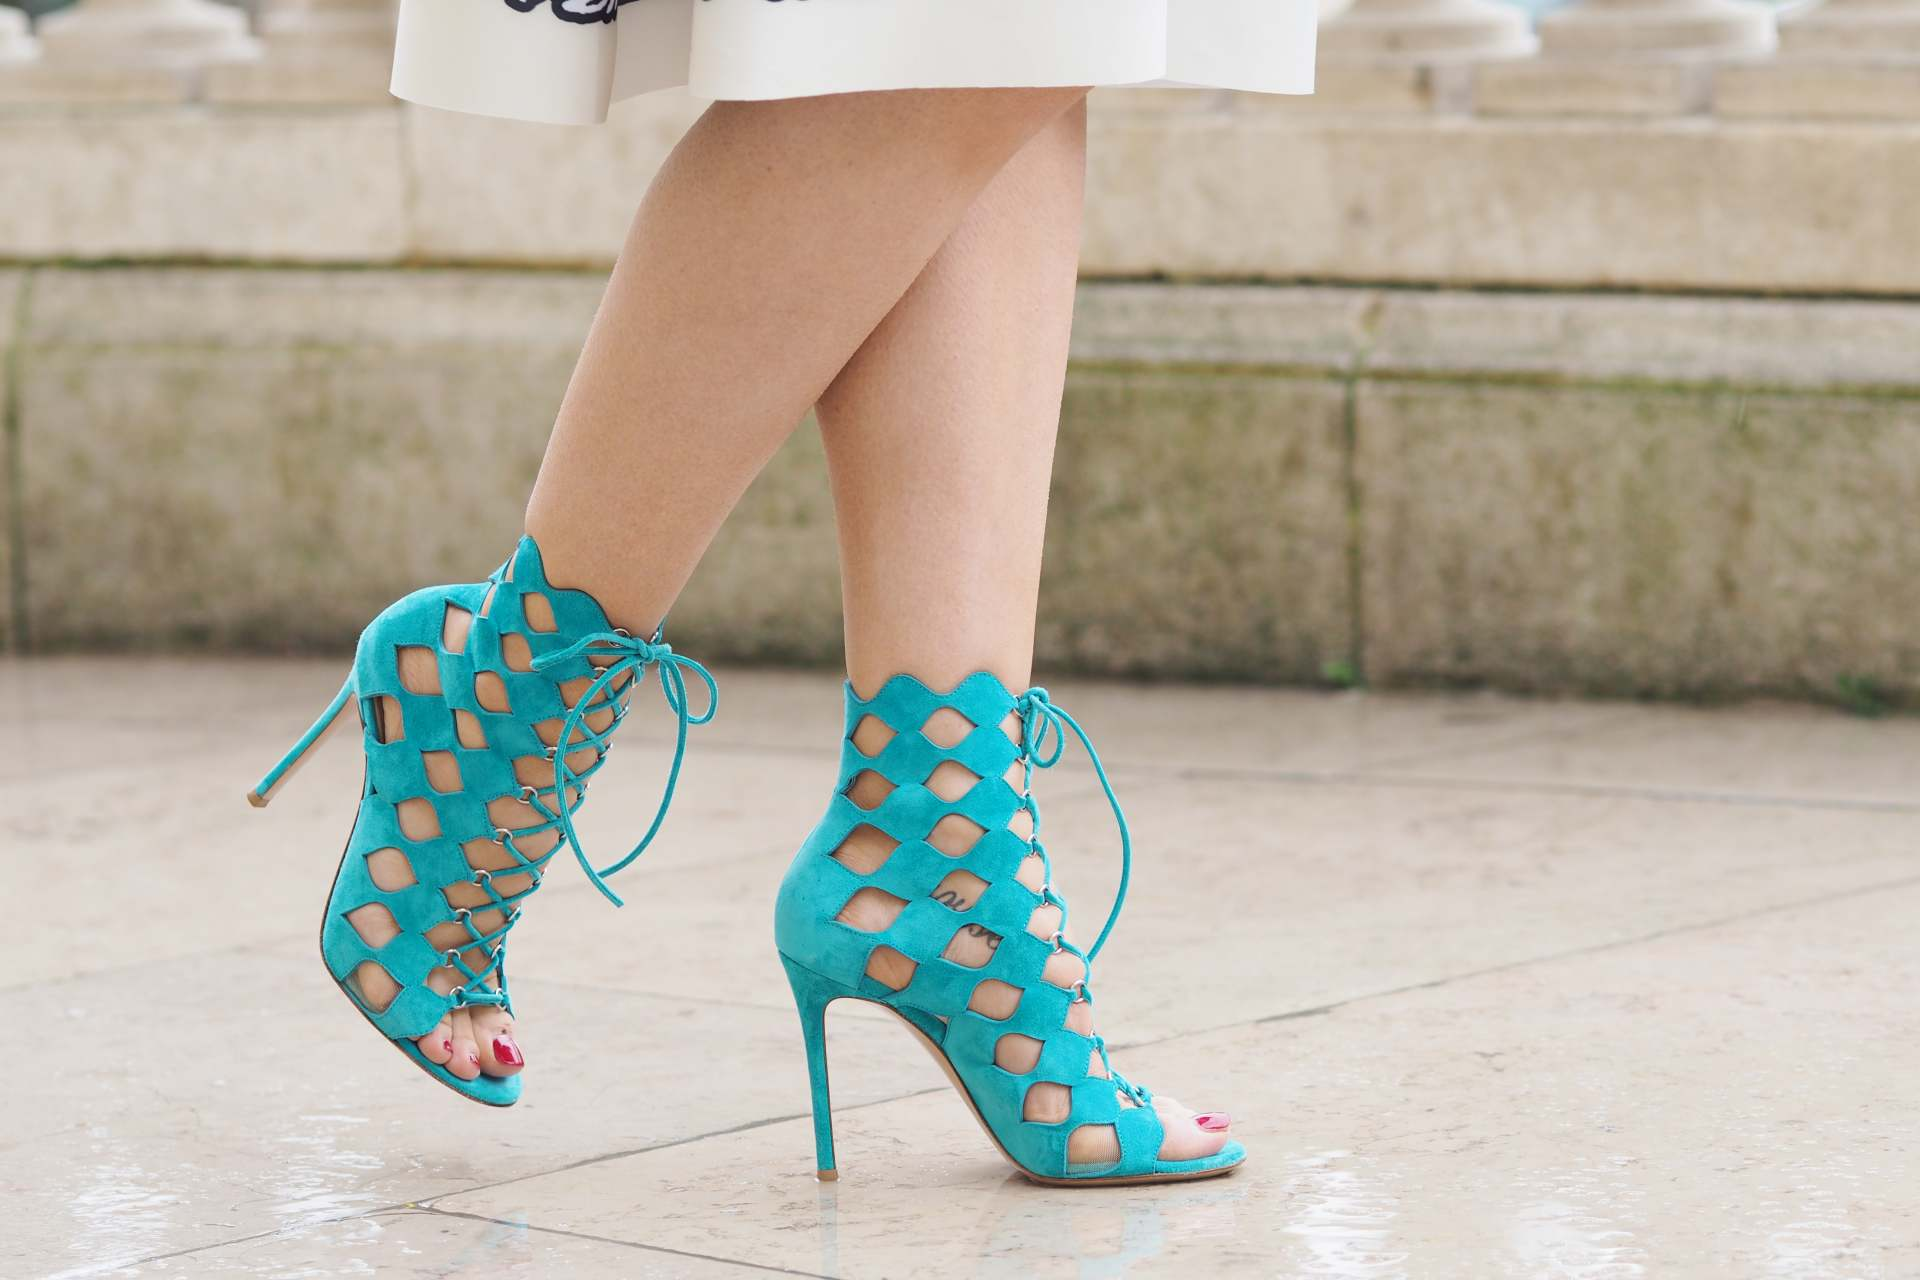 inthefrow gianvito rossi caged heels in turquoise, louis vuitton twist bag in black, maje skirt